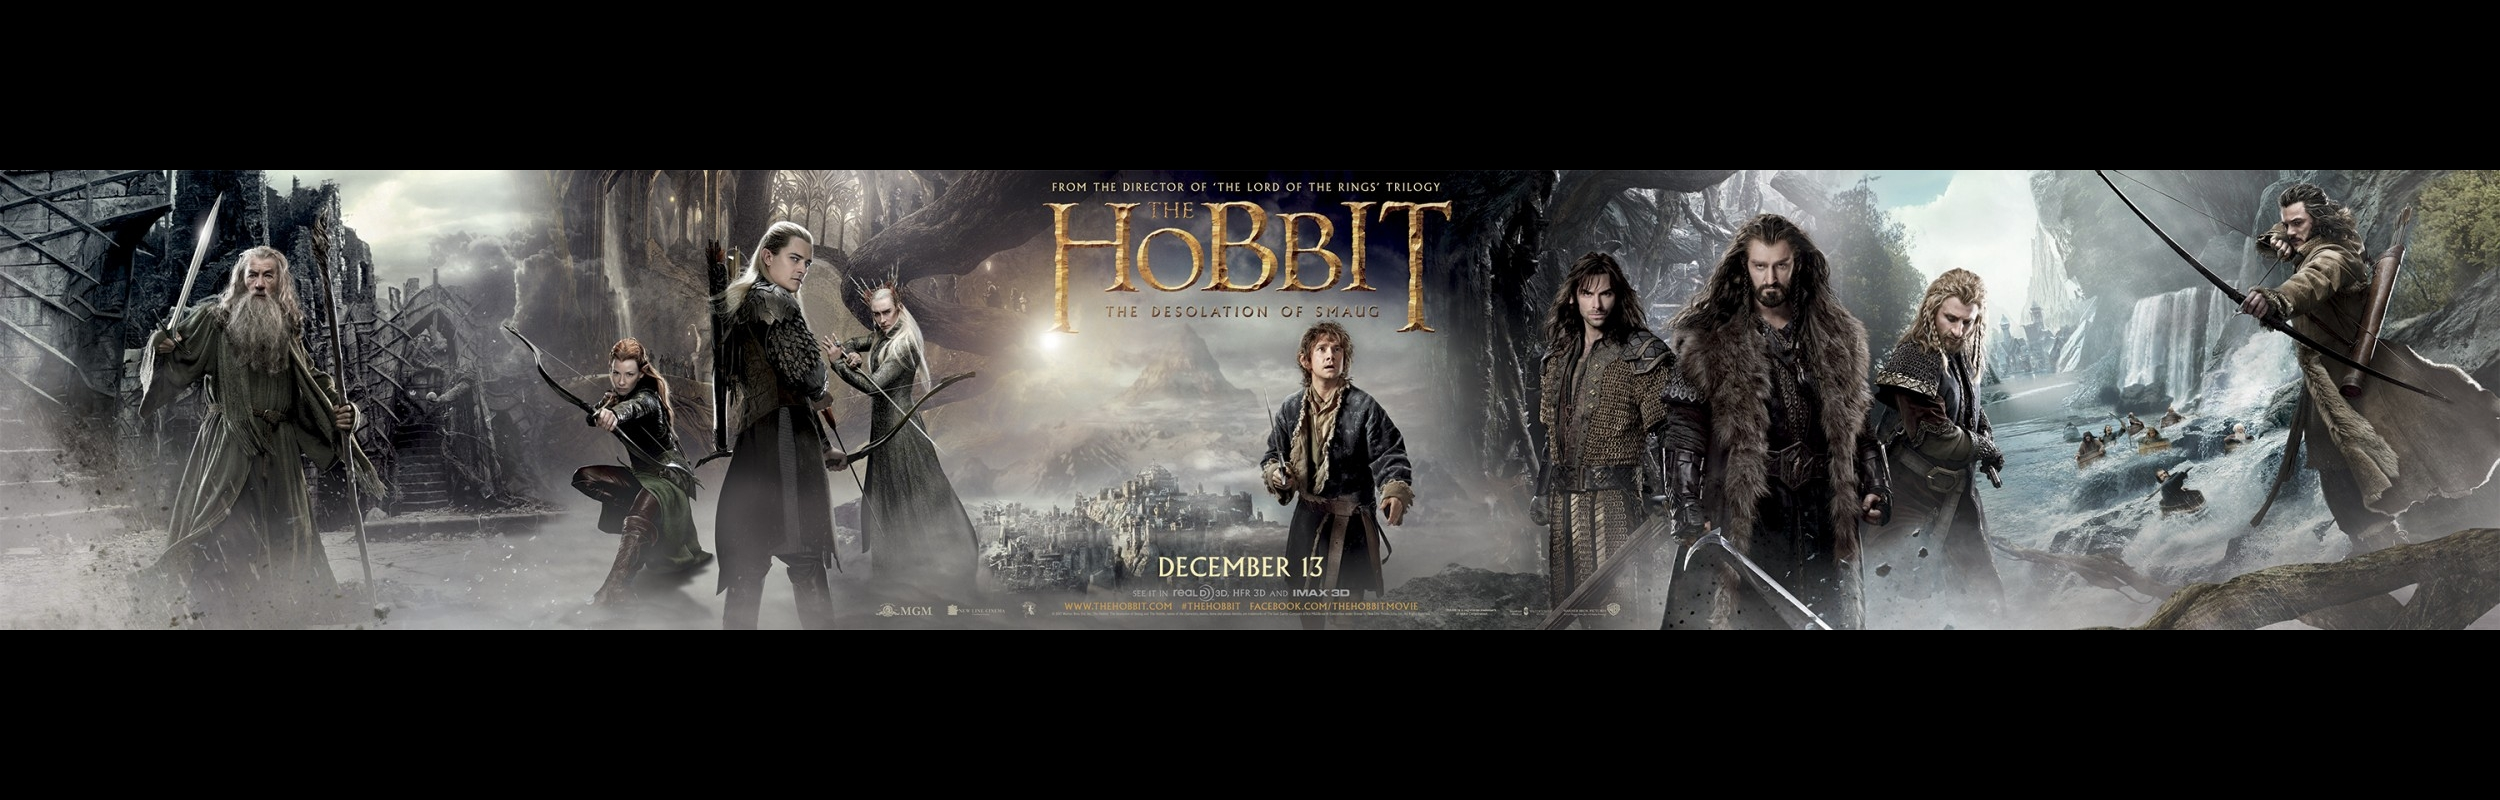 of Smaug 2013   Wallpaper Three   Movie Smack Talk Wallpaper 2500x800